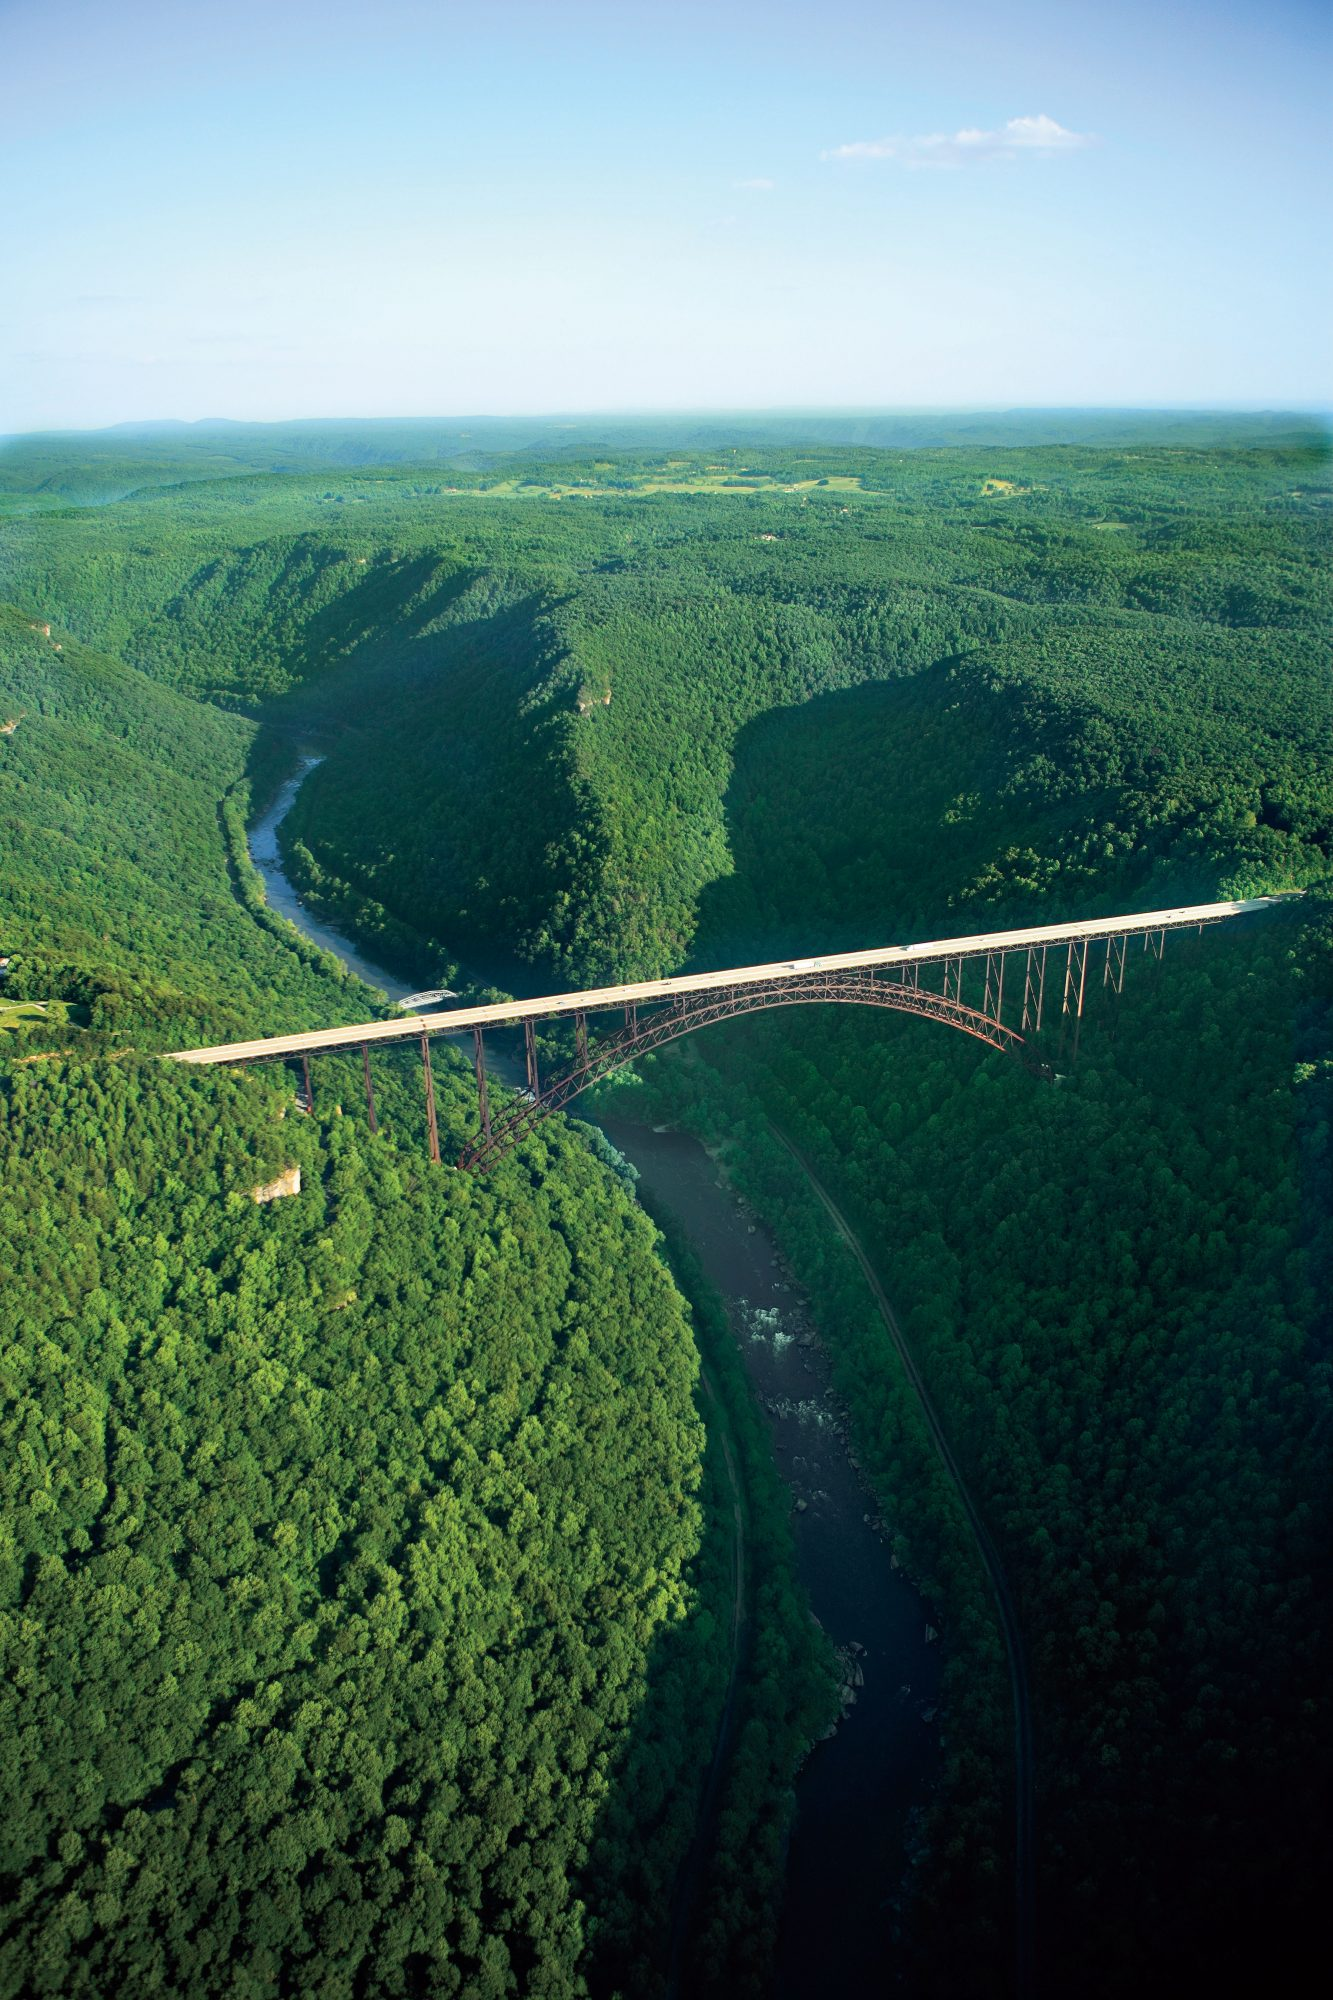 Best Southern Travel Destinations: New River Gorge National River